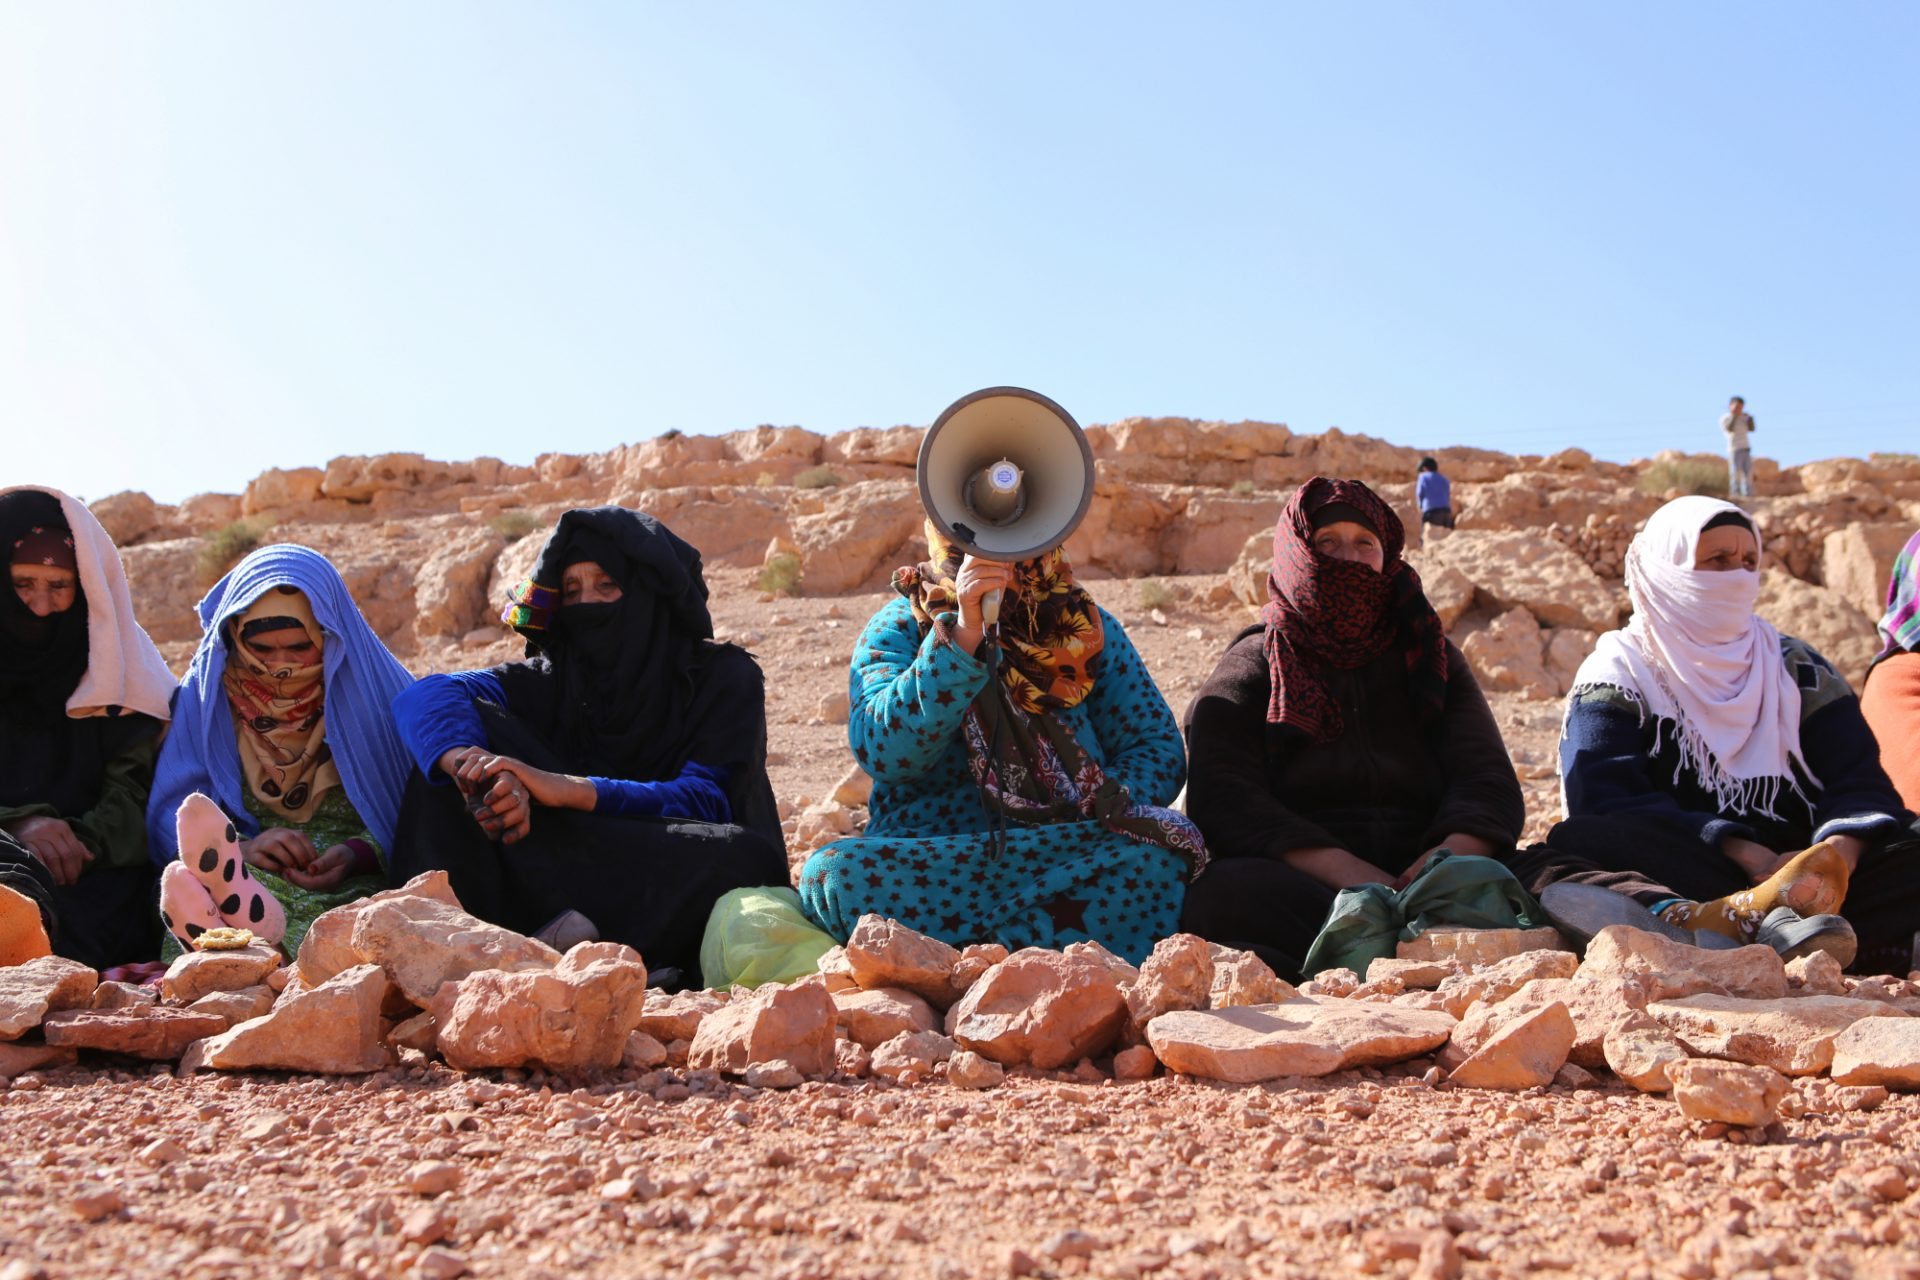 Moroccan women sit in a line while one woman with a megaphone leads a protest